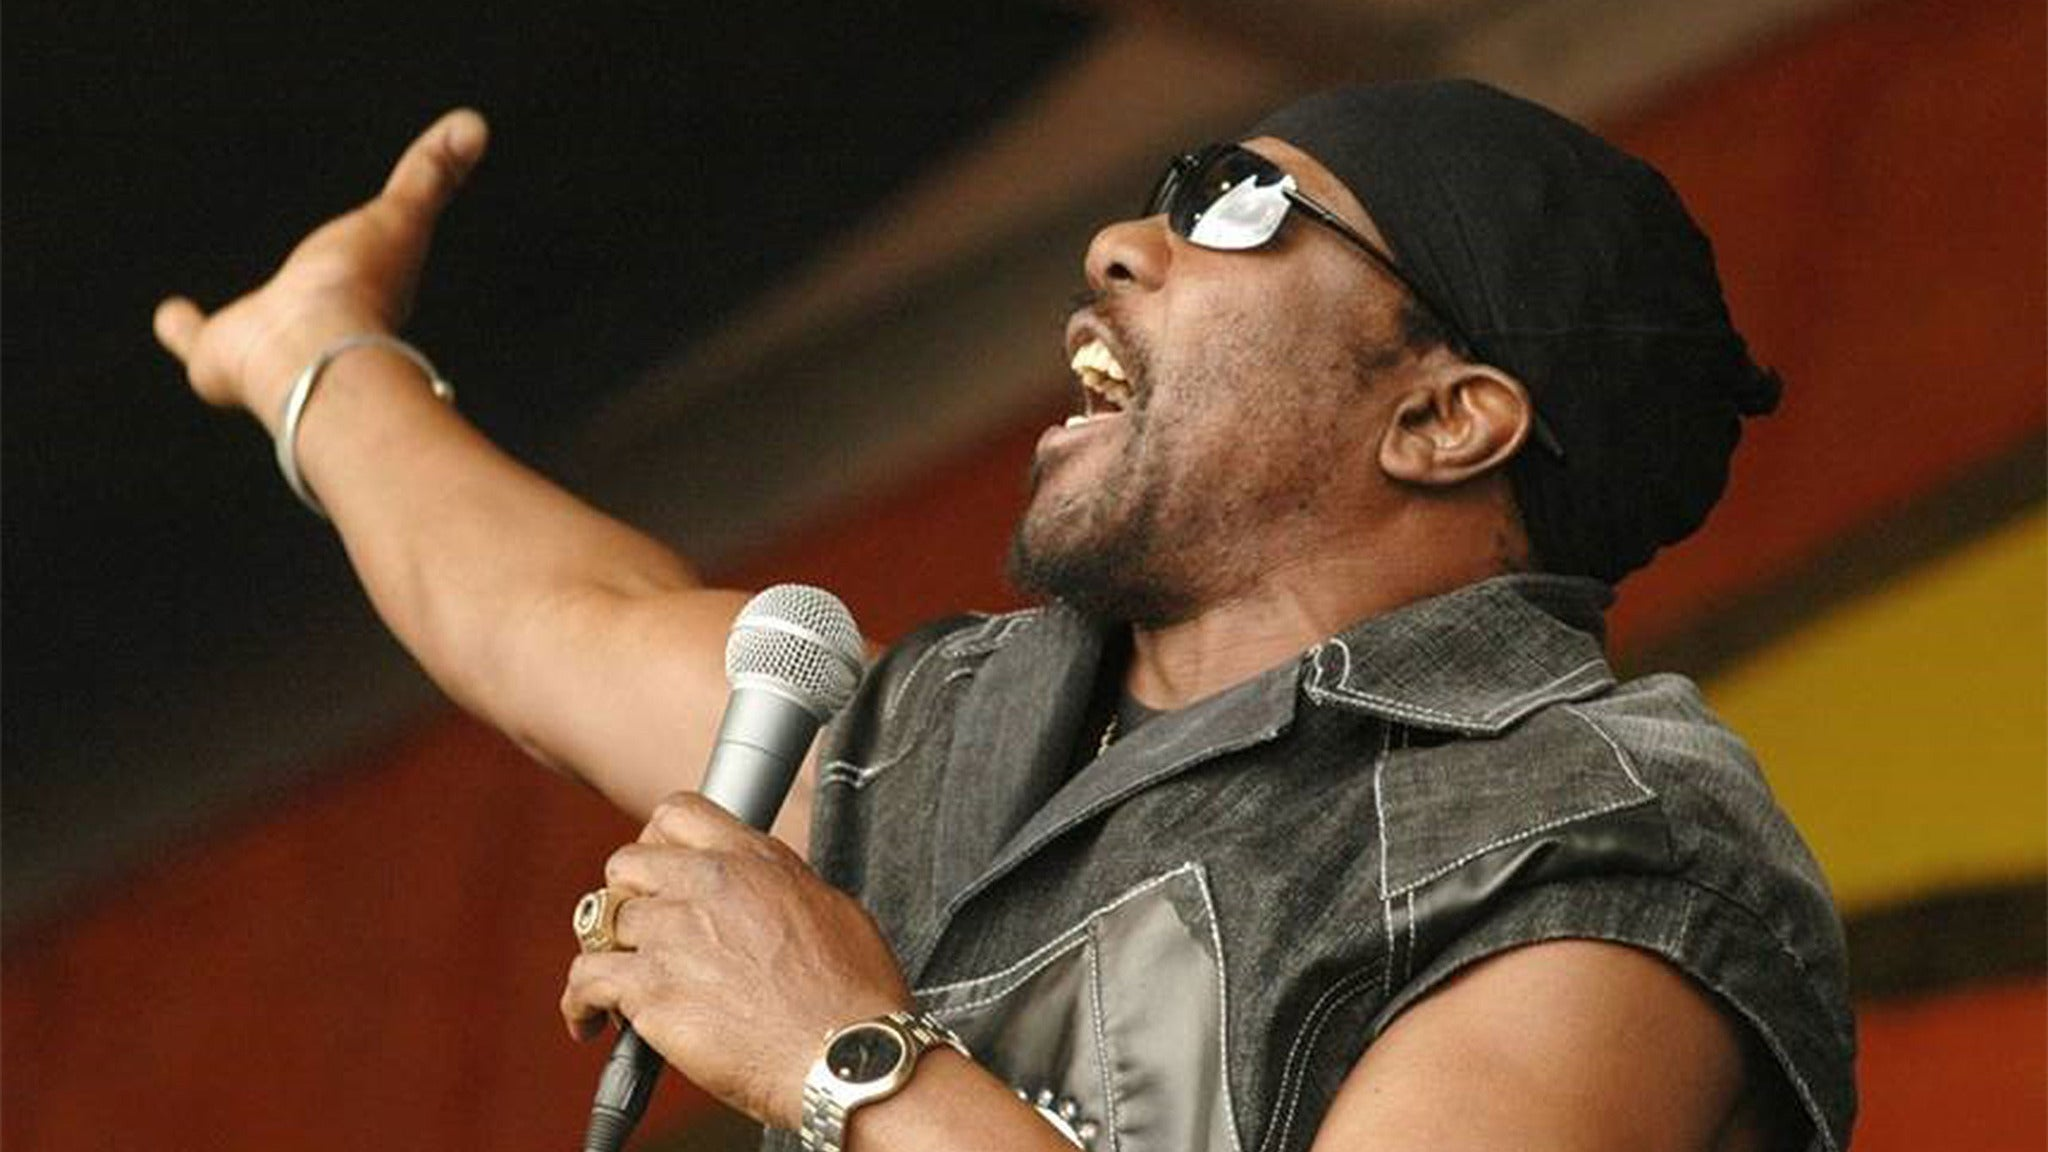 TOOTS AND THE MAYTALS - LIVE IN CONCERT - RIVERSIDE, CA 92501